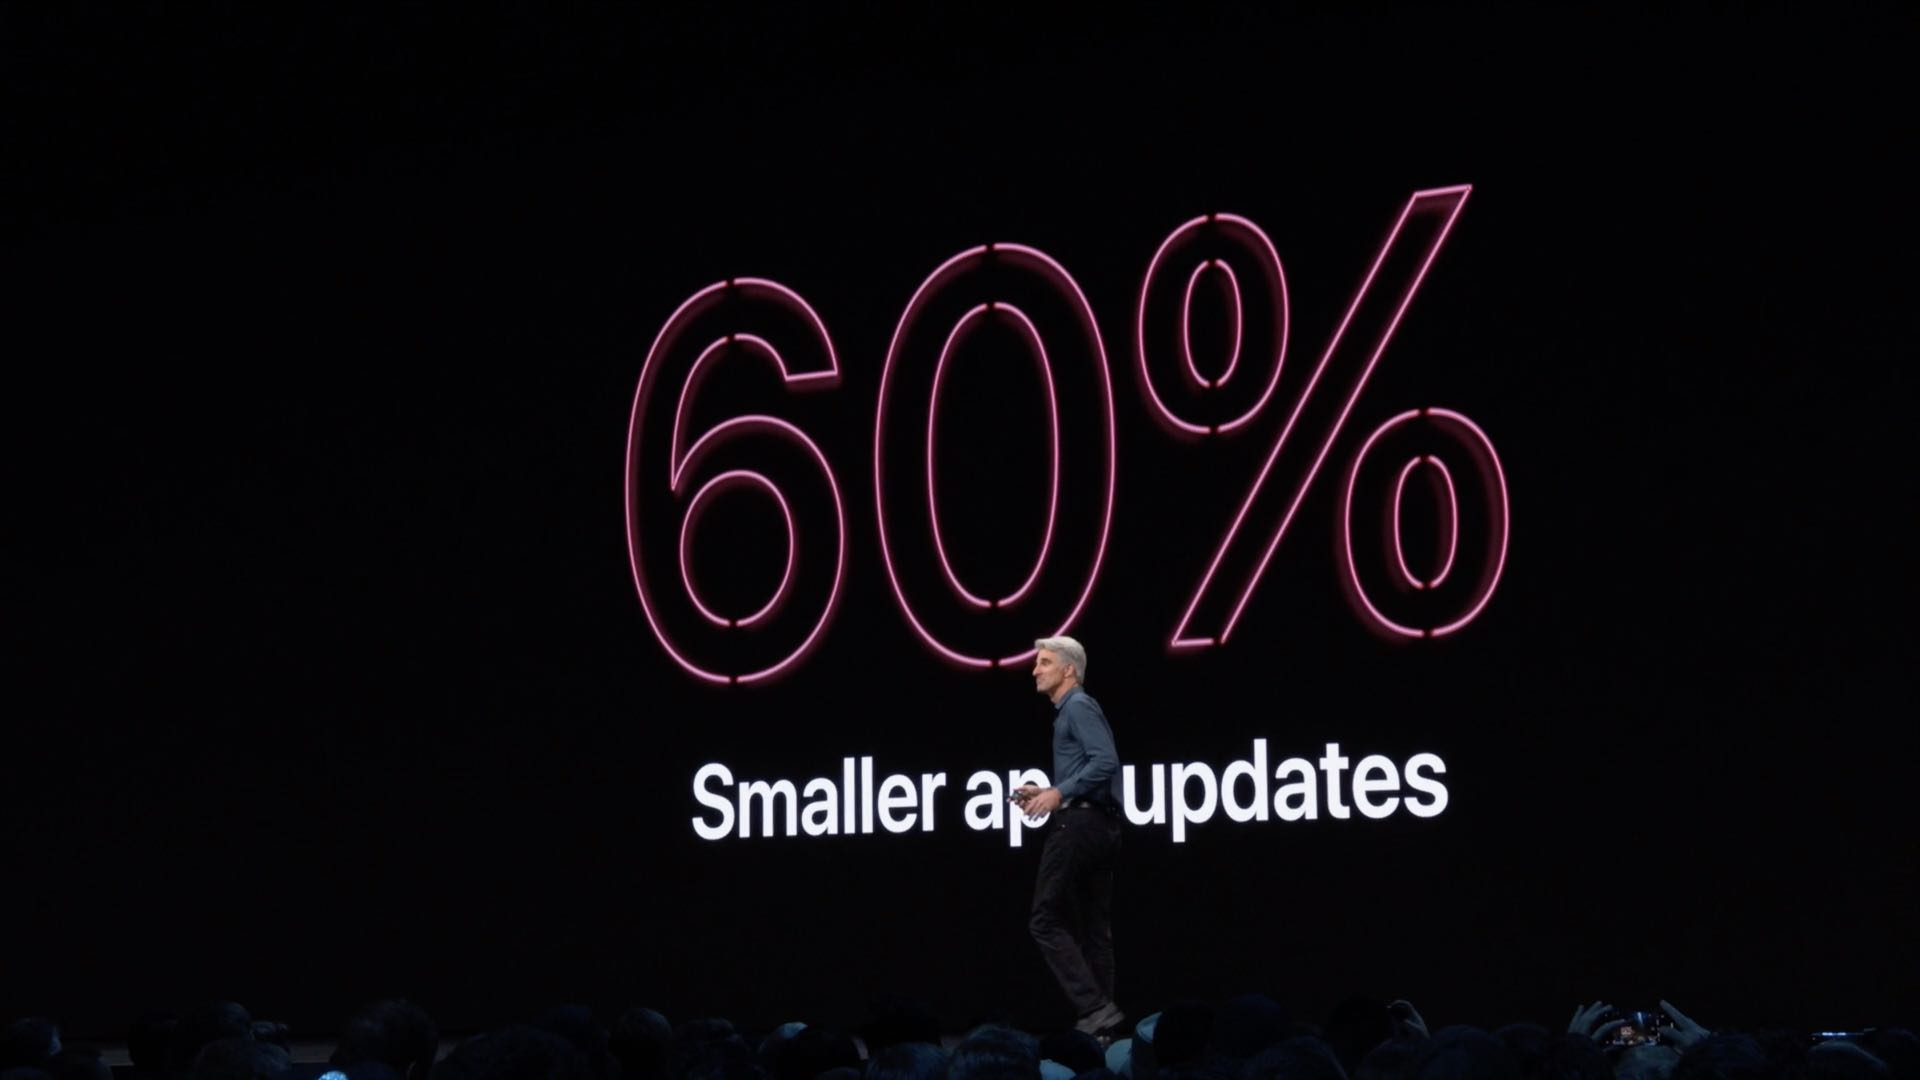 WWDC 2019 slide: 60 percent smaller app updates